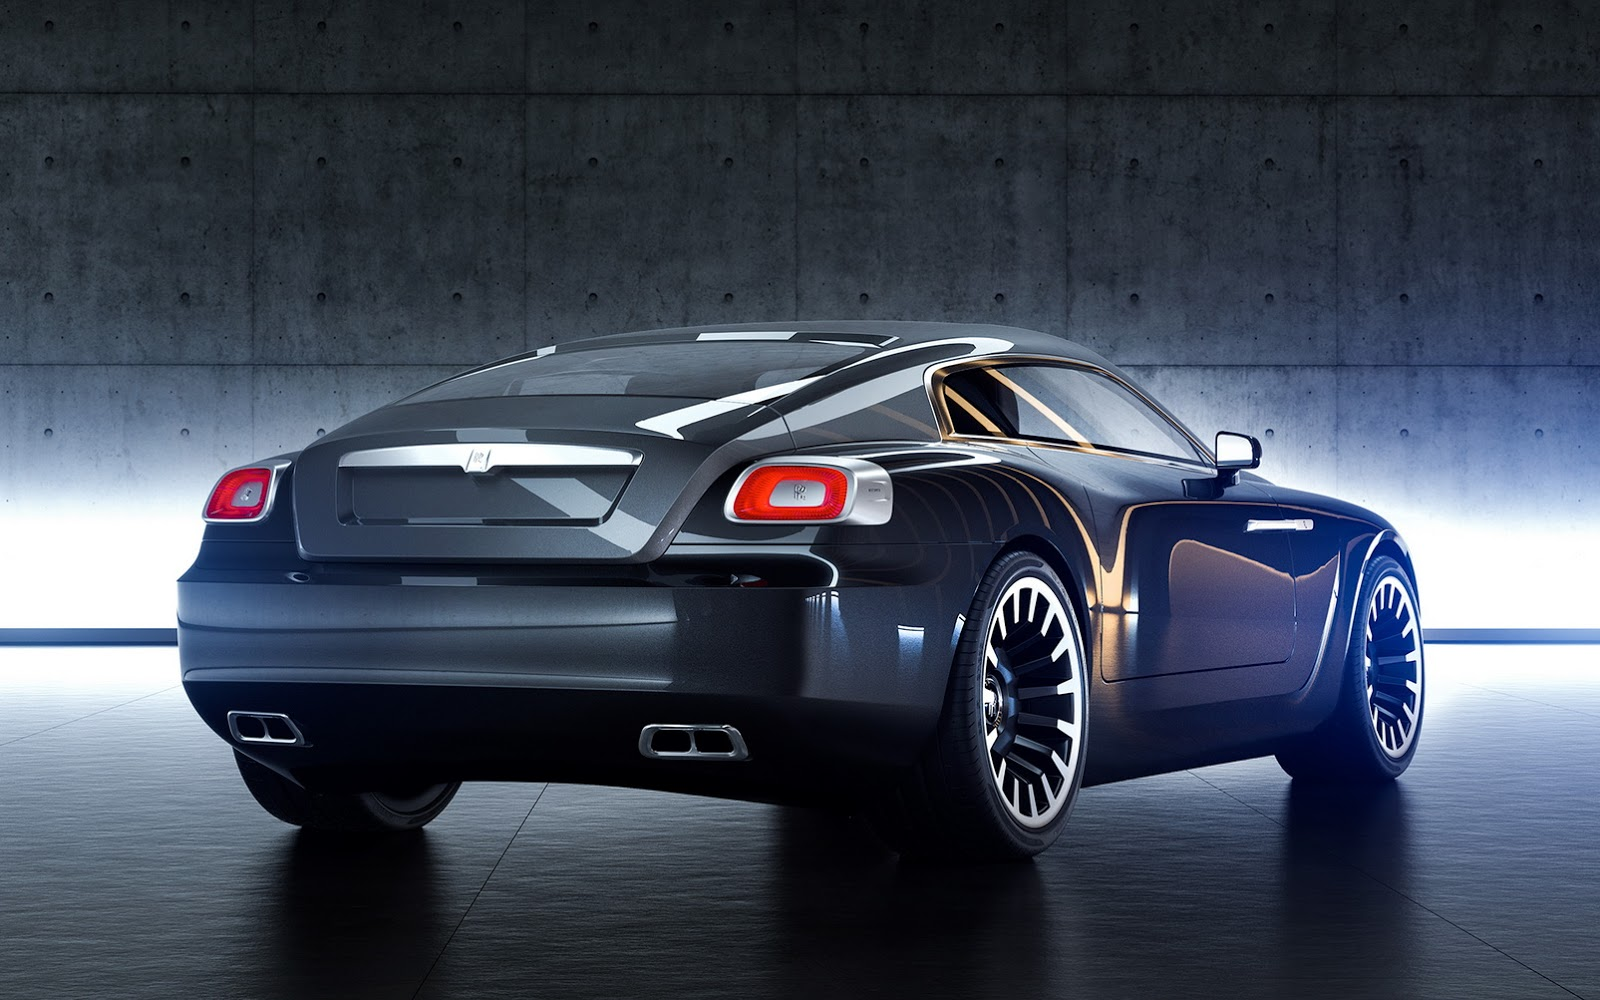 84 New 2020 Rolls Royce Wraith Configurations